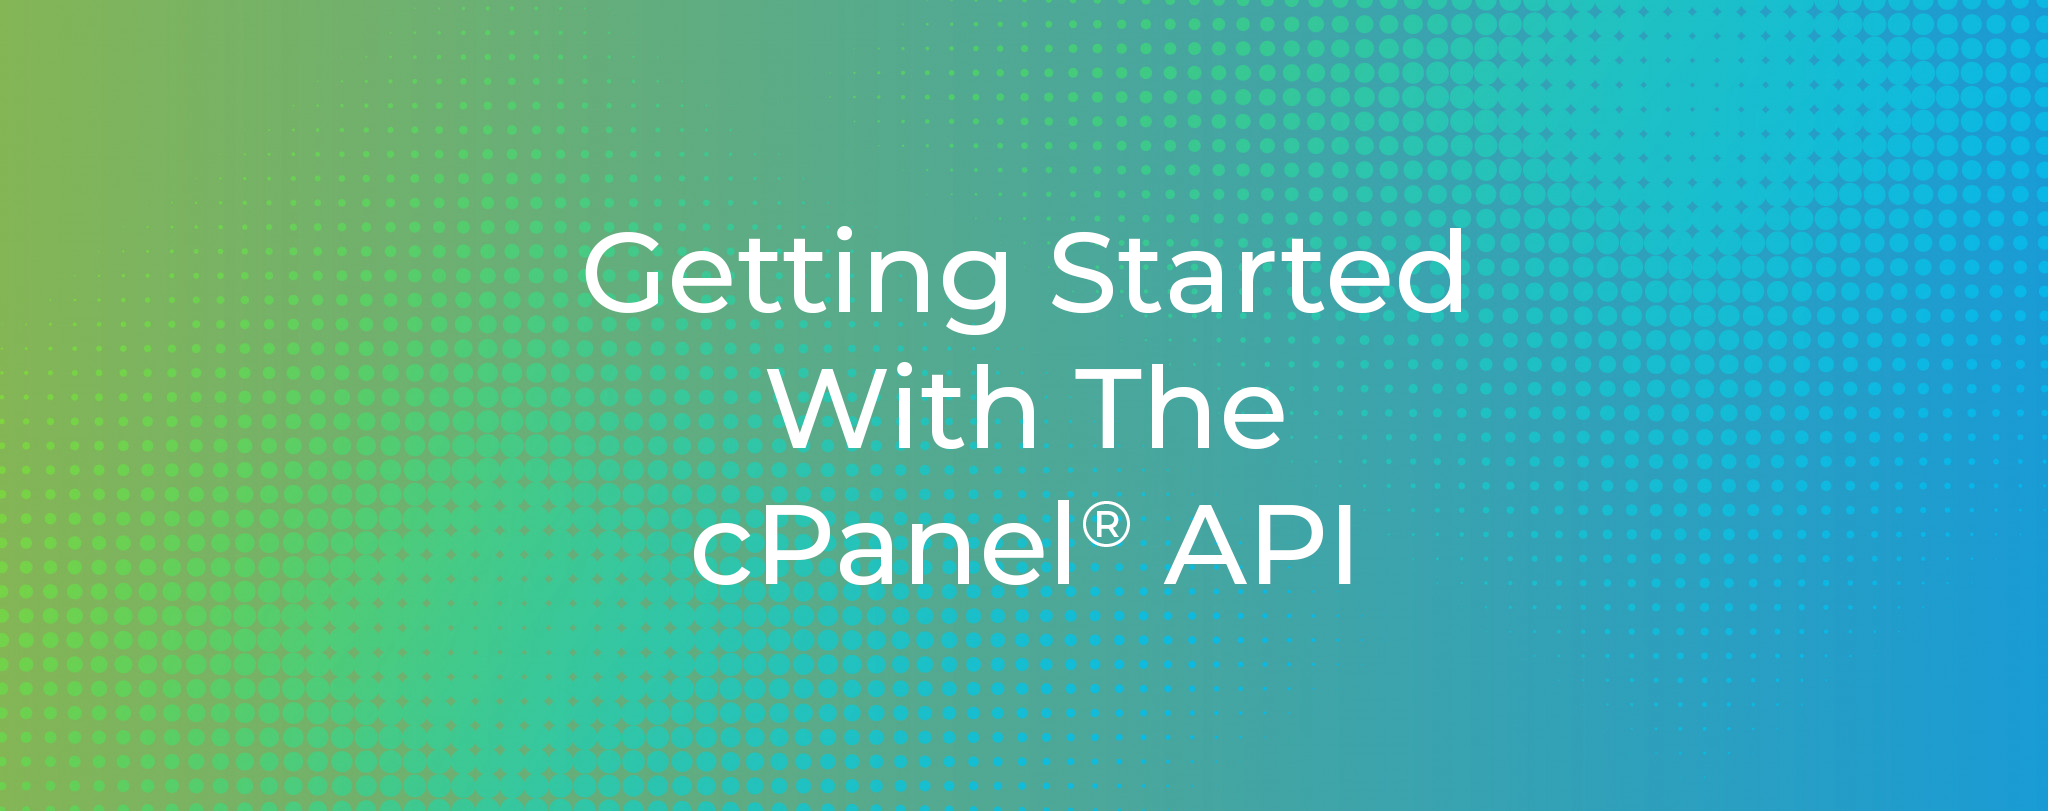 Getting Started With The cPanel API